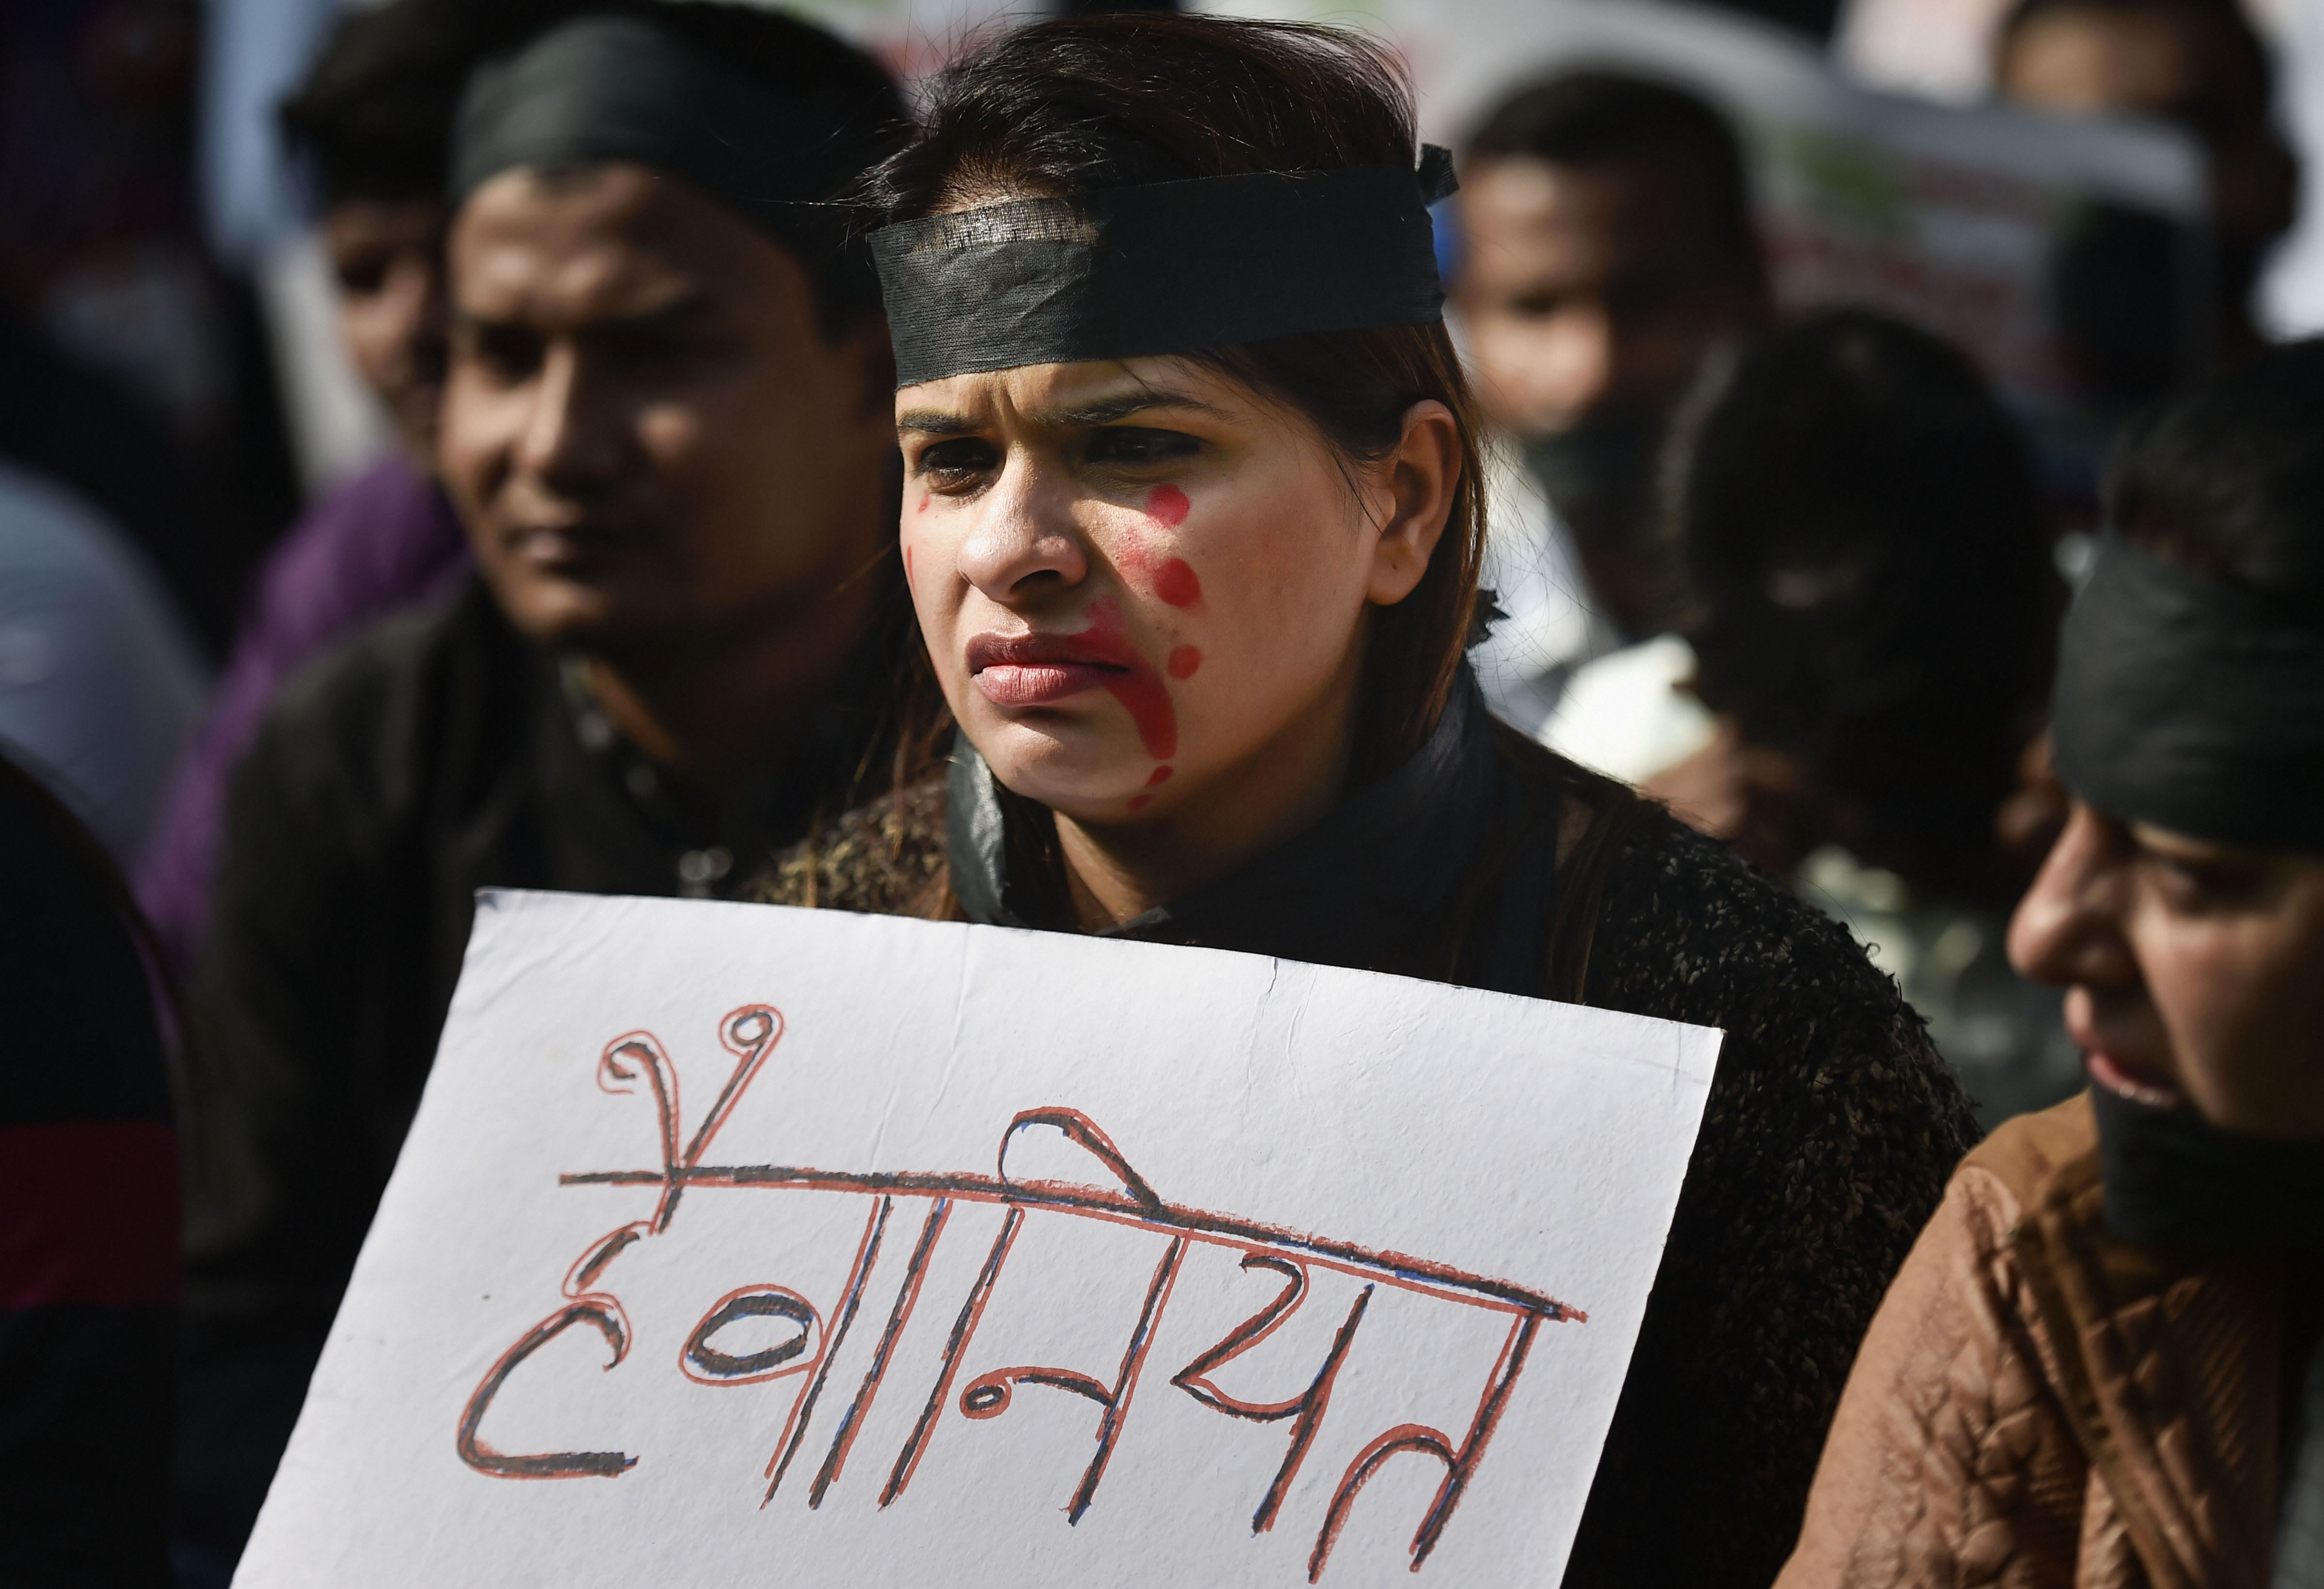 A member of National Students Union of India (NSUI), wearing a black band, holds a placard during a protest against the rape and murder of a veterinarian in Hyderabad last week, in New Delhi, Monday, December 2, 2019.